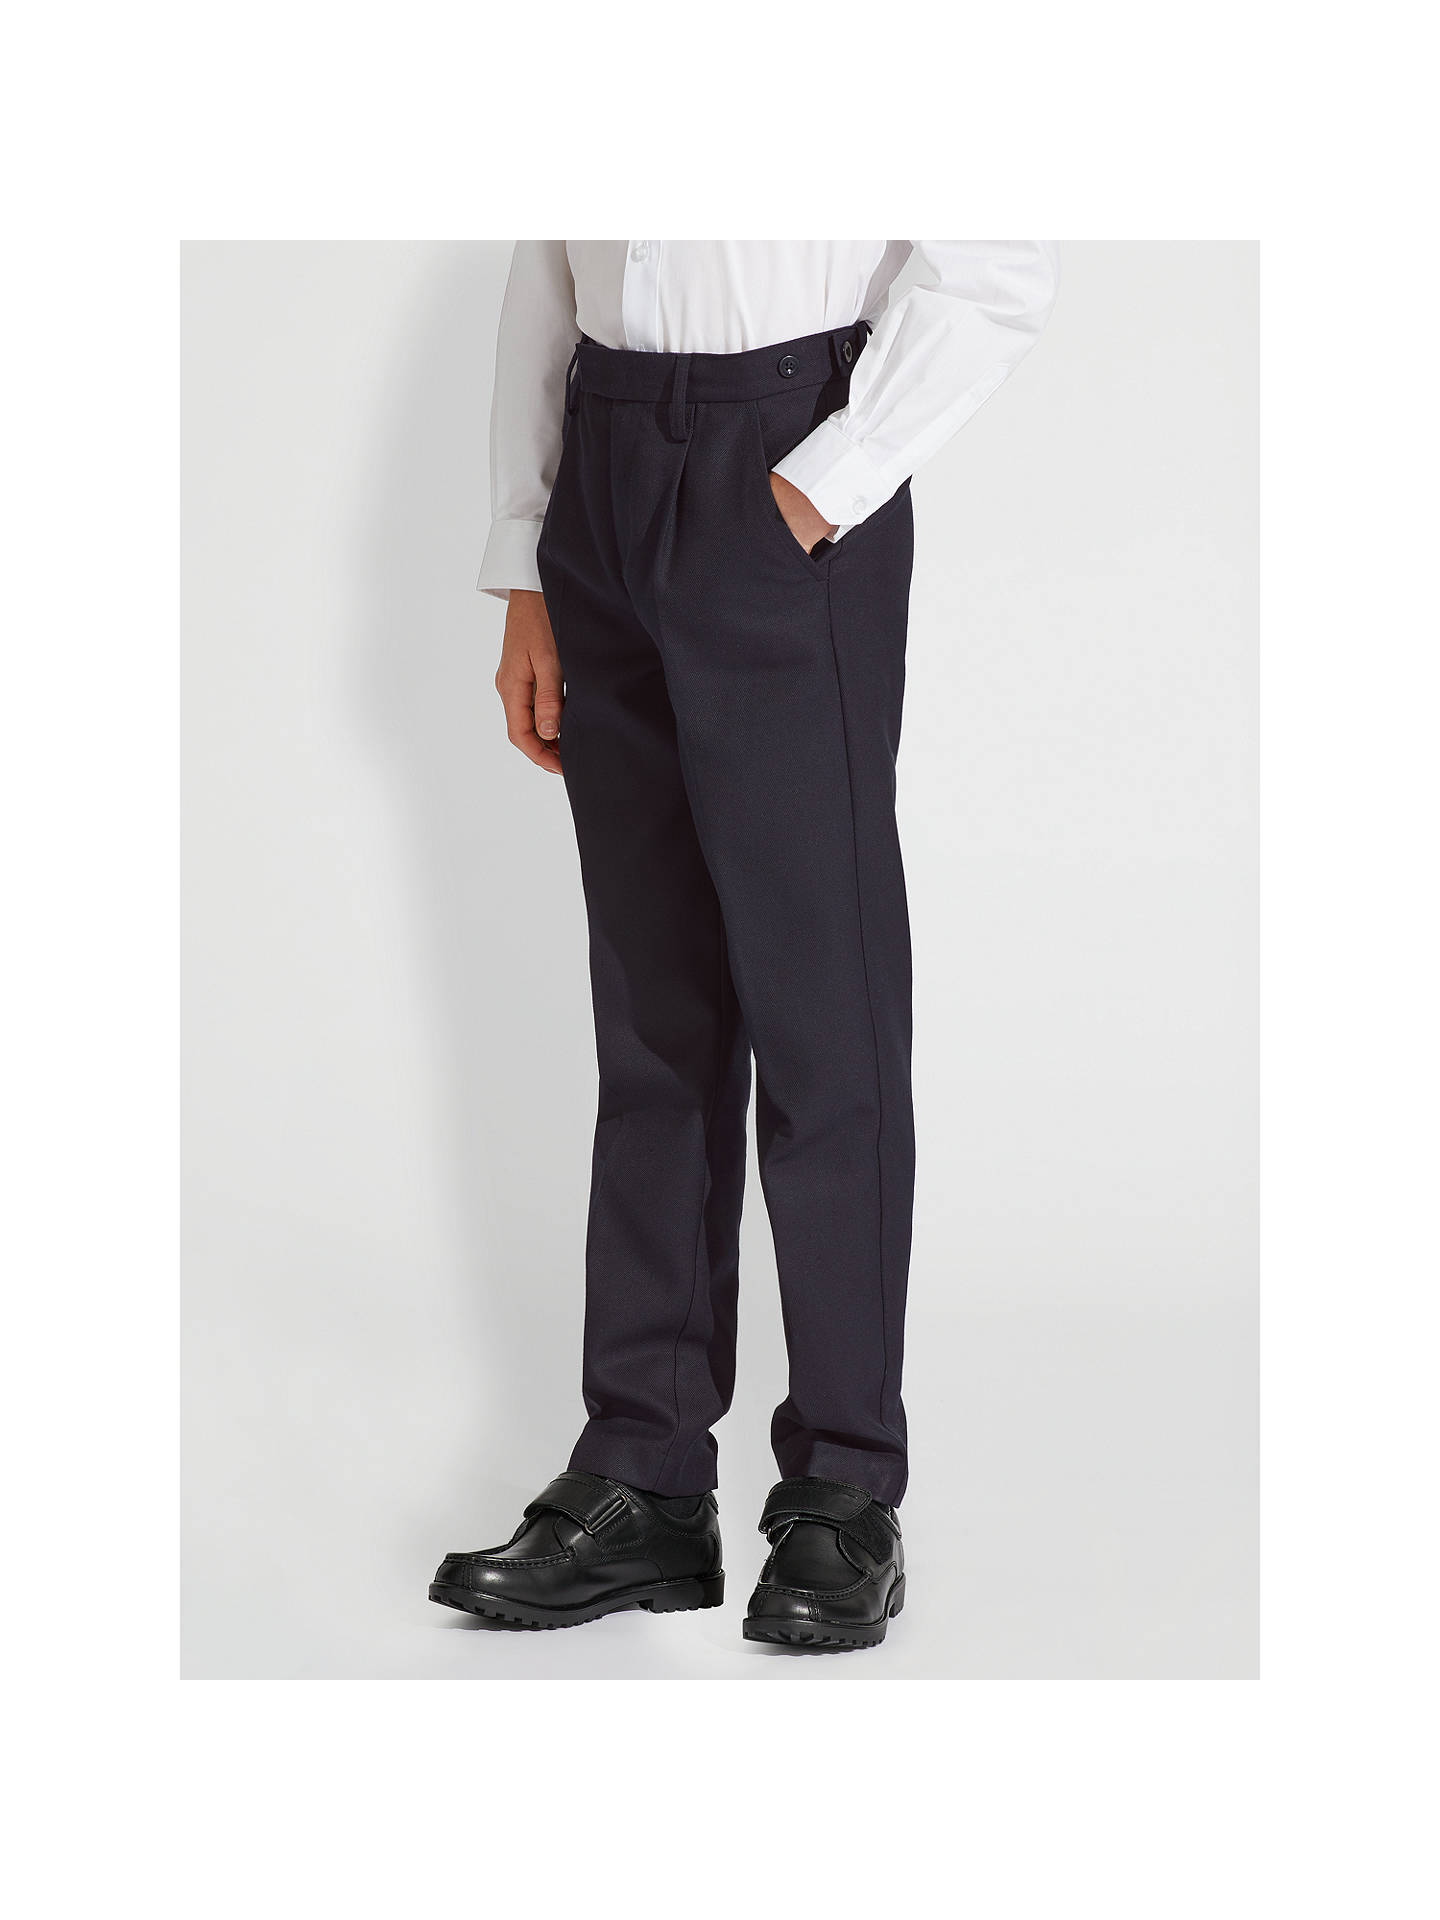 Buy John Lewis & Partners Boys' Easy Care Adjustable Waist Tailored Fit School Trousers, Navy, 8 years, Regular Online at johnlewis.com